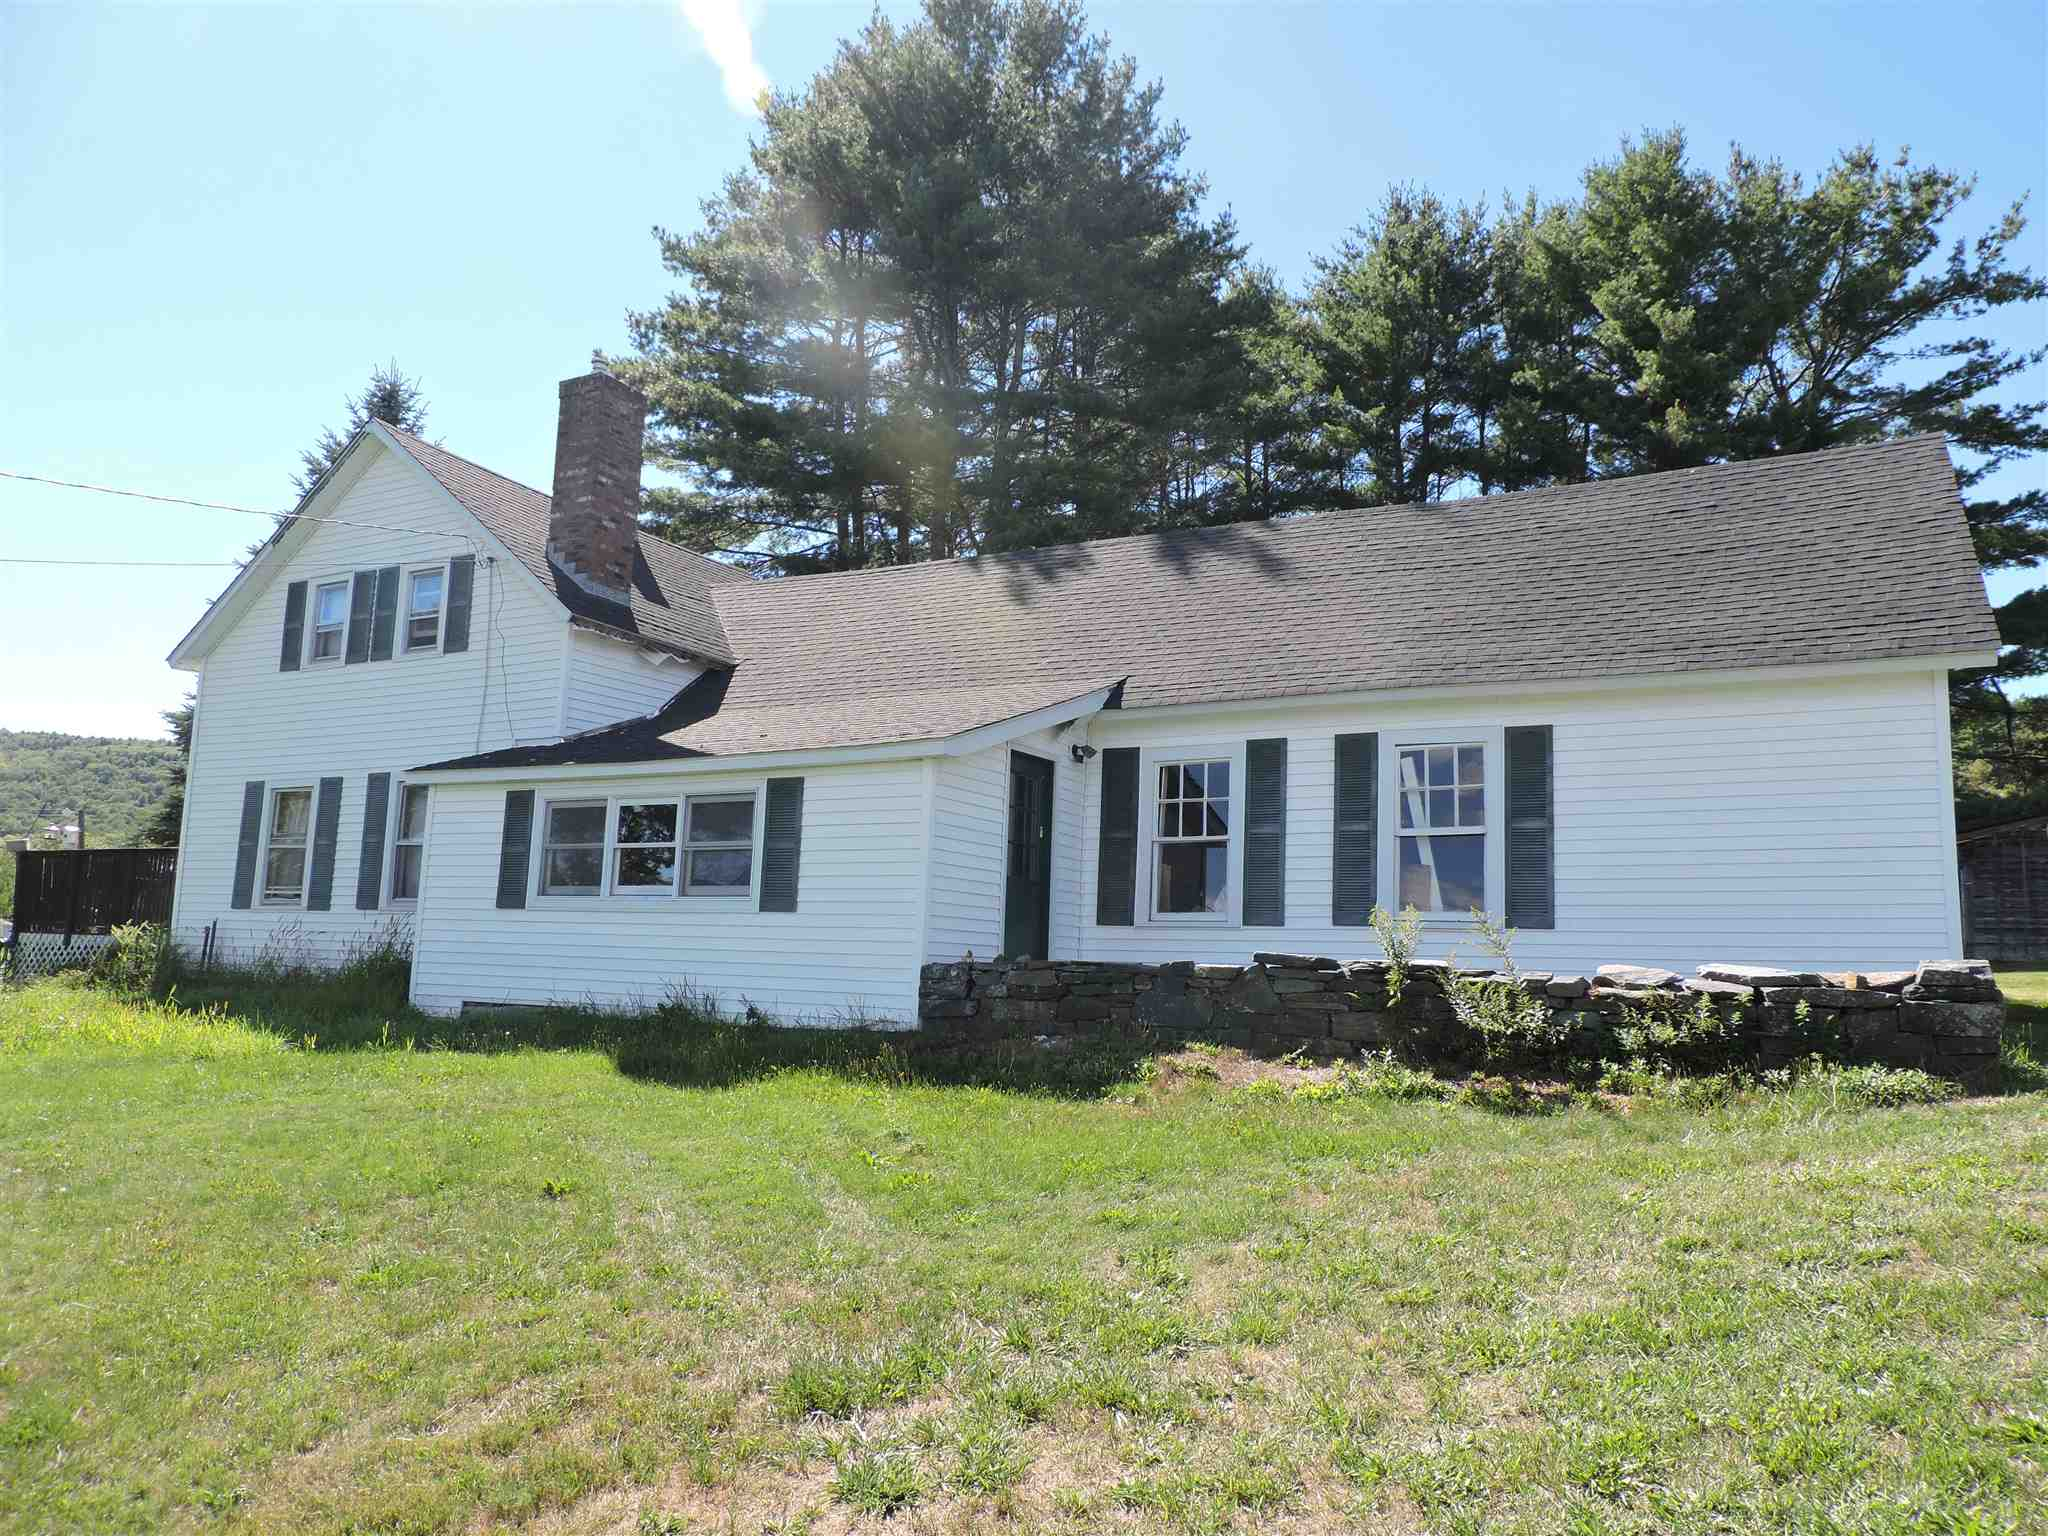 MLS 4826996: 15 Estey Lane, Enfield NH